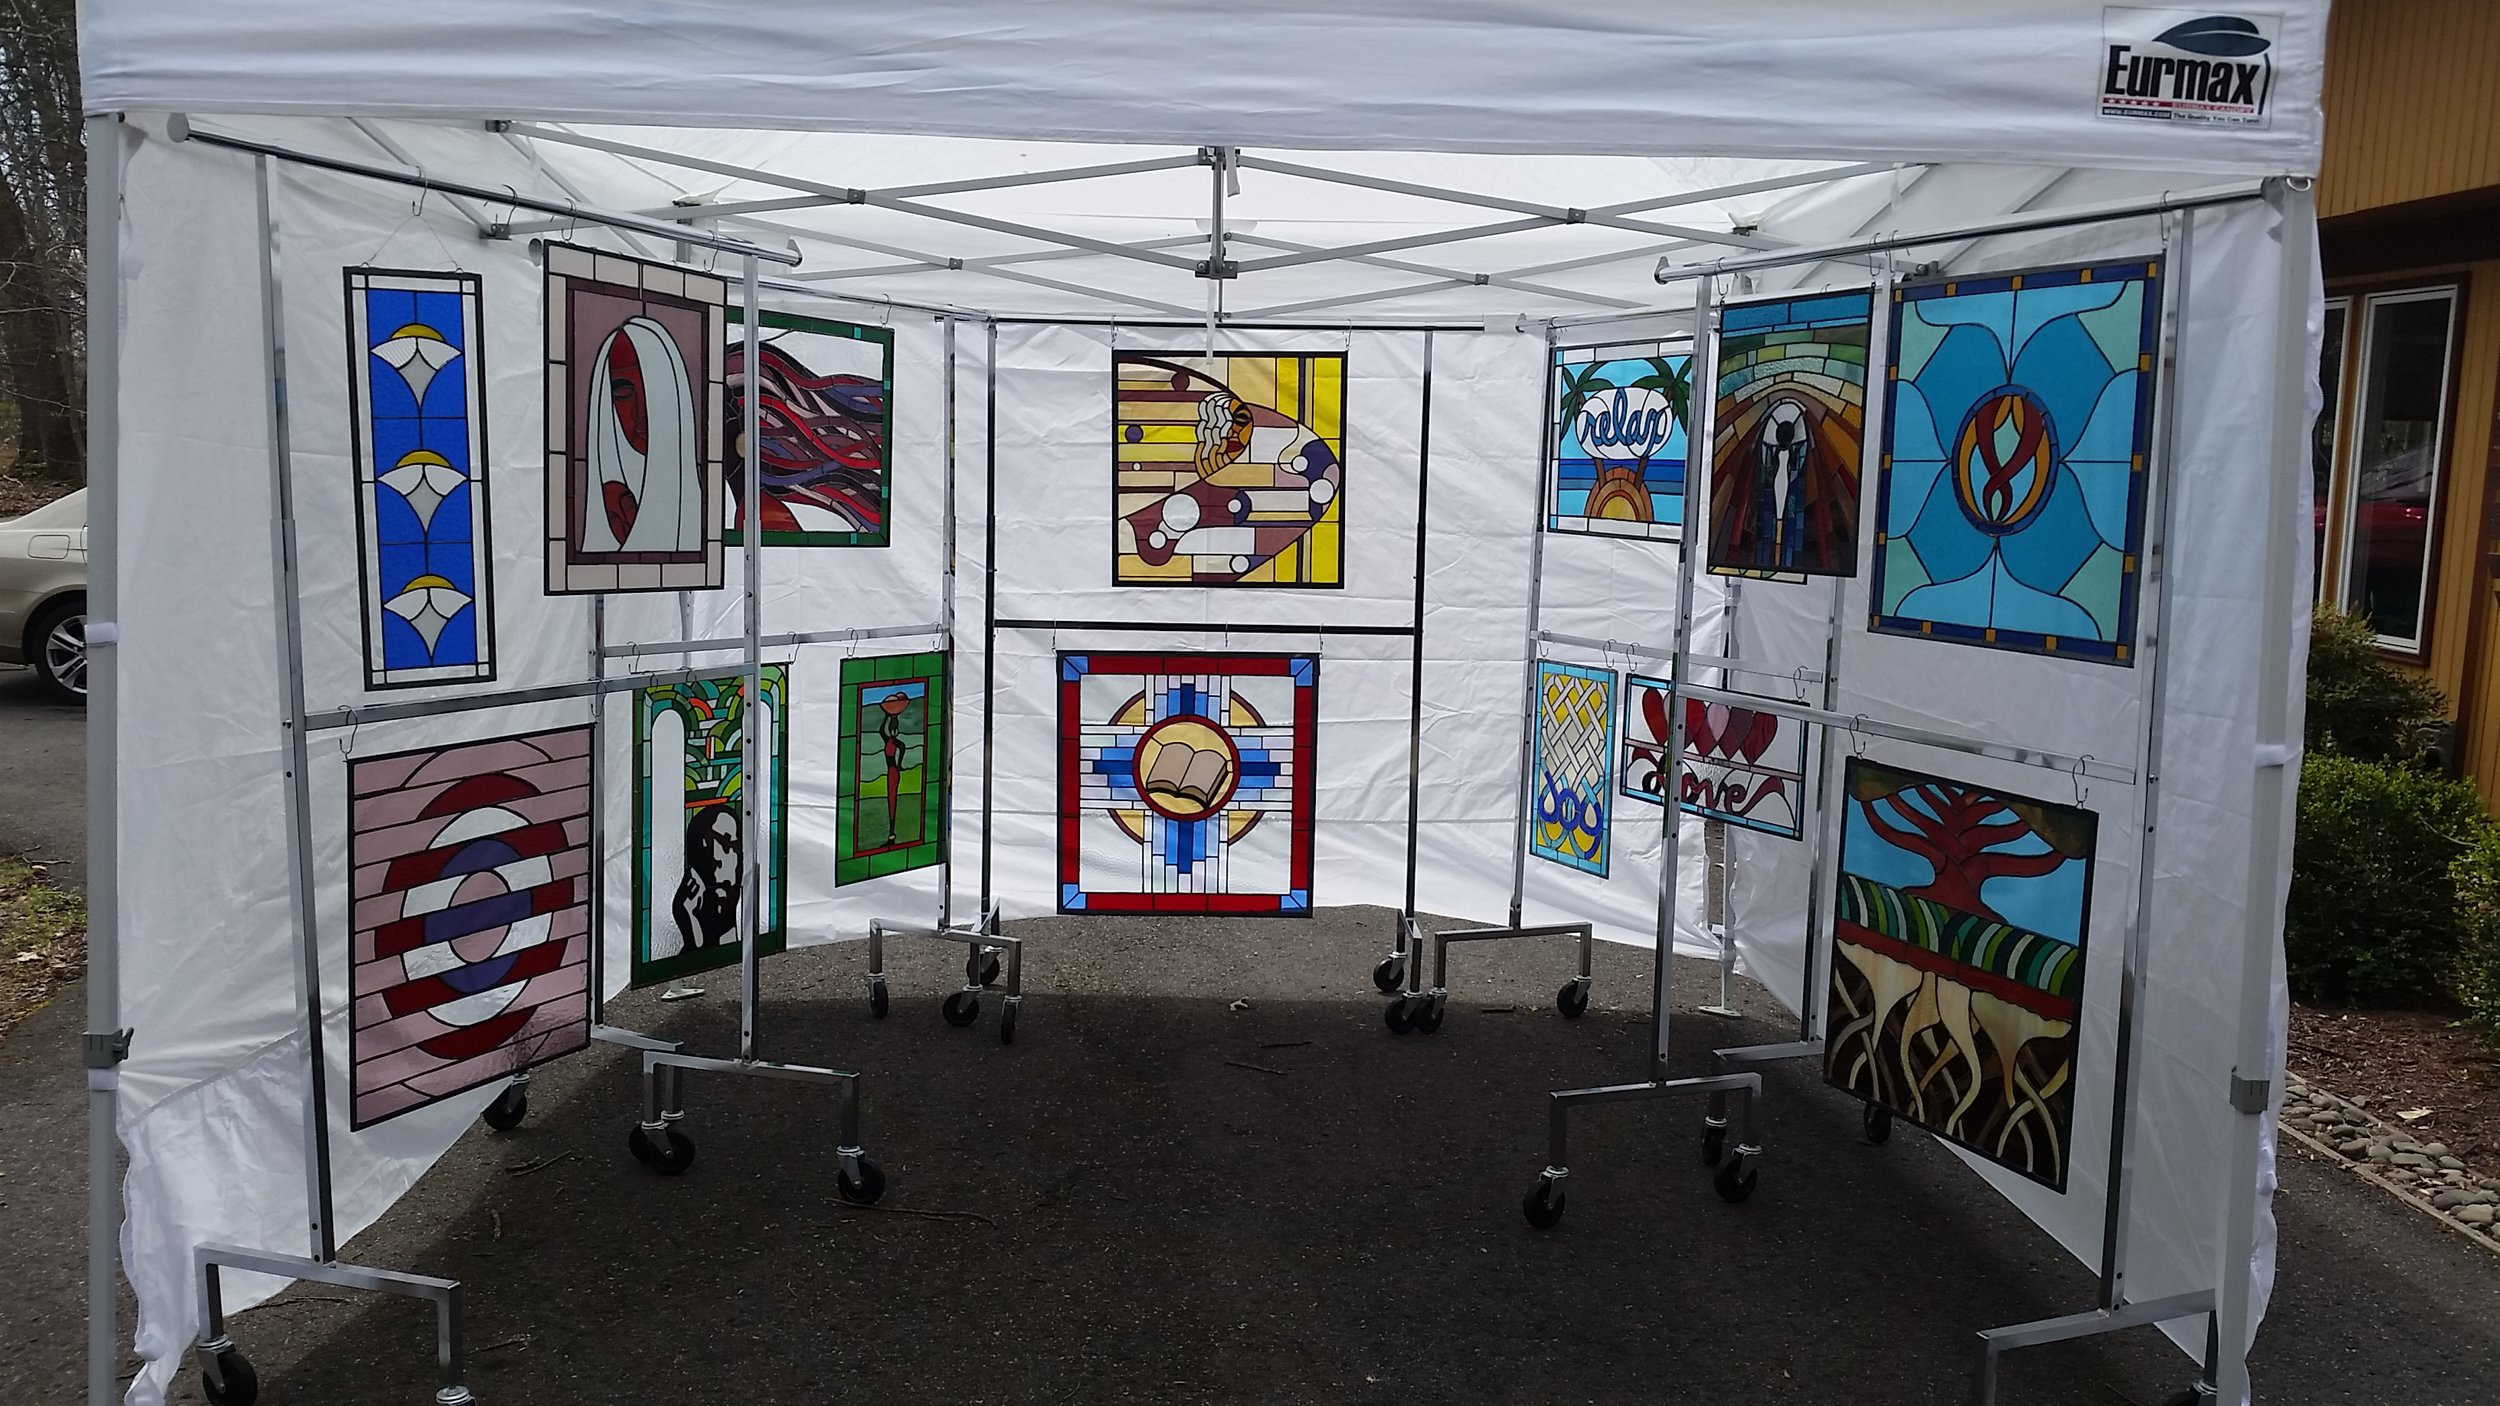 stained glass artist Arvid Lee's booth showing his work